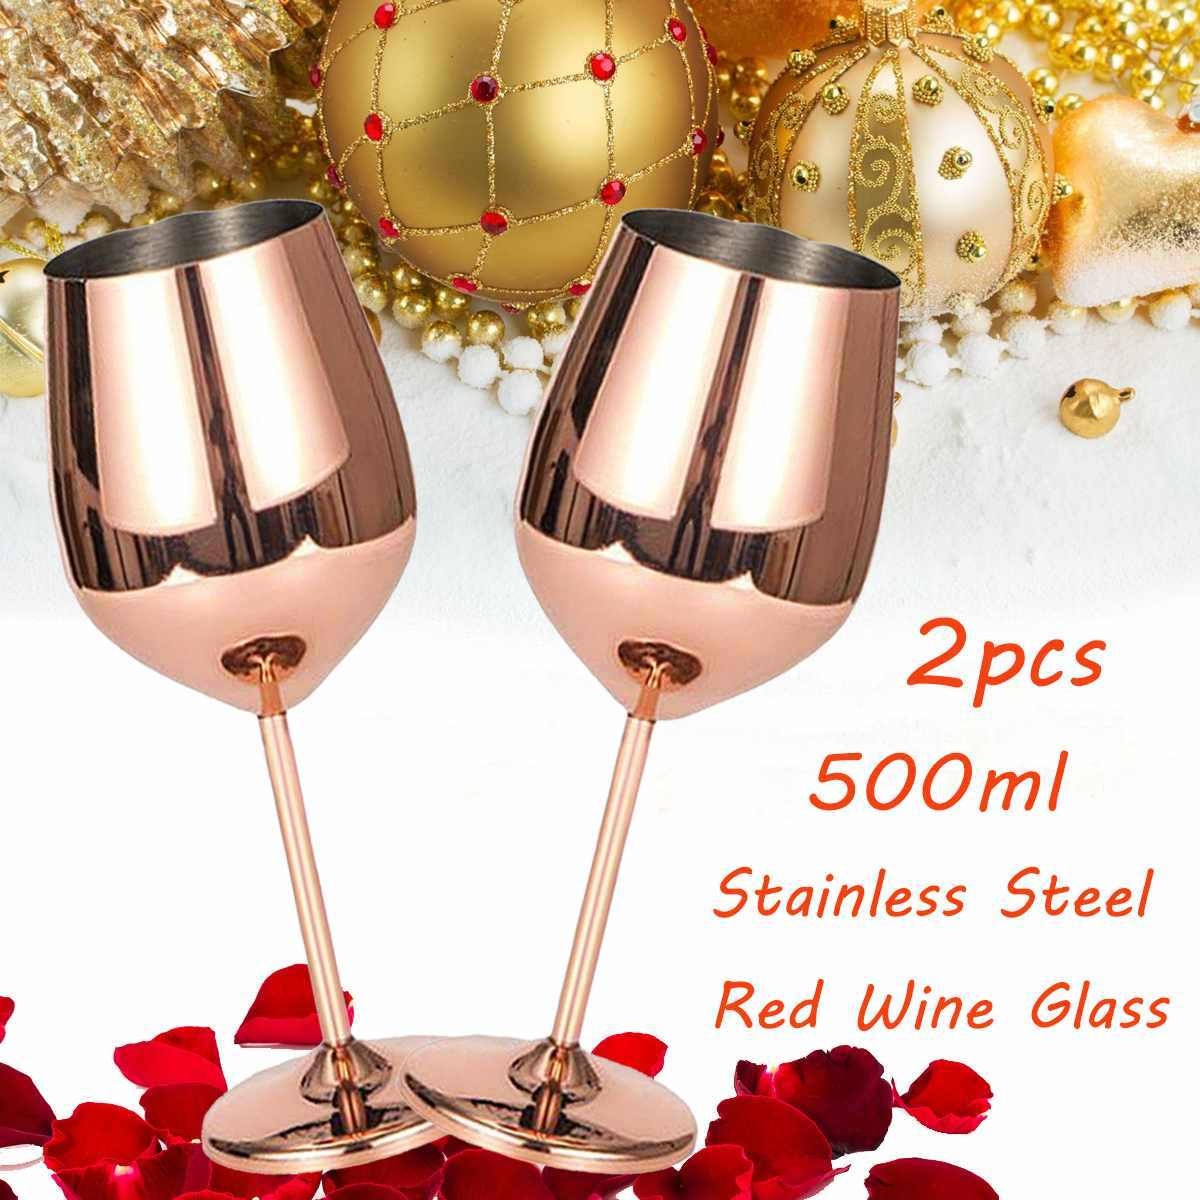 501-600ml Shatterproof Stainless Steel Red Wine Cup Anti-broken Wine Glasses Stemware Wine cup Durable Drinkware Bar Tools